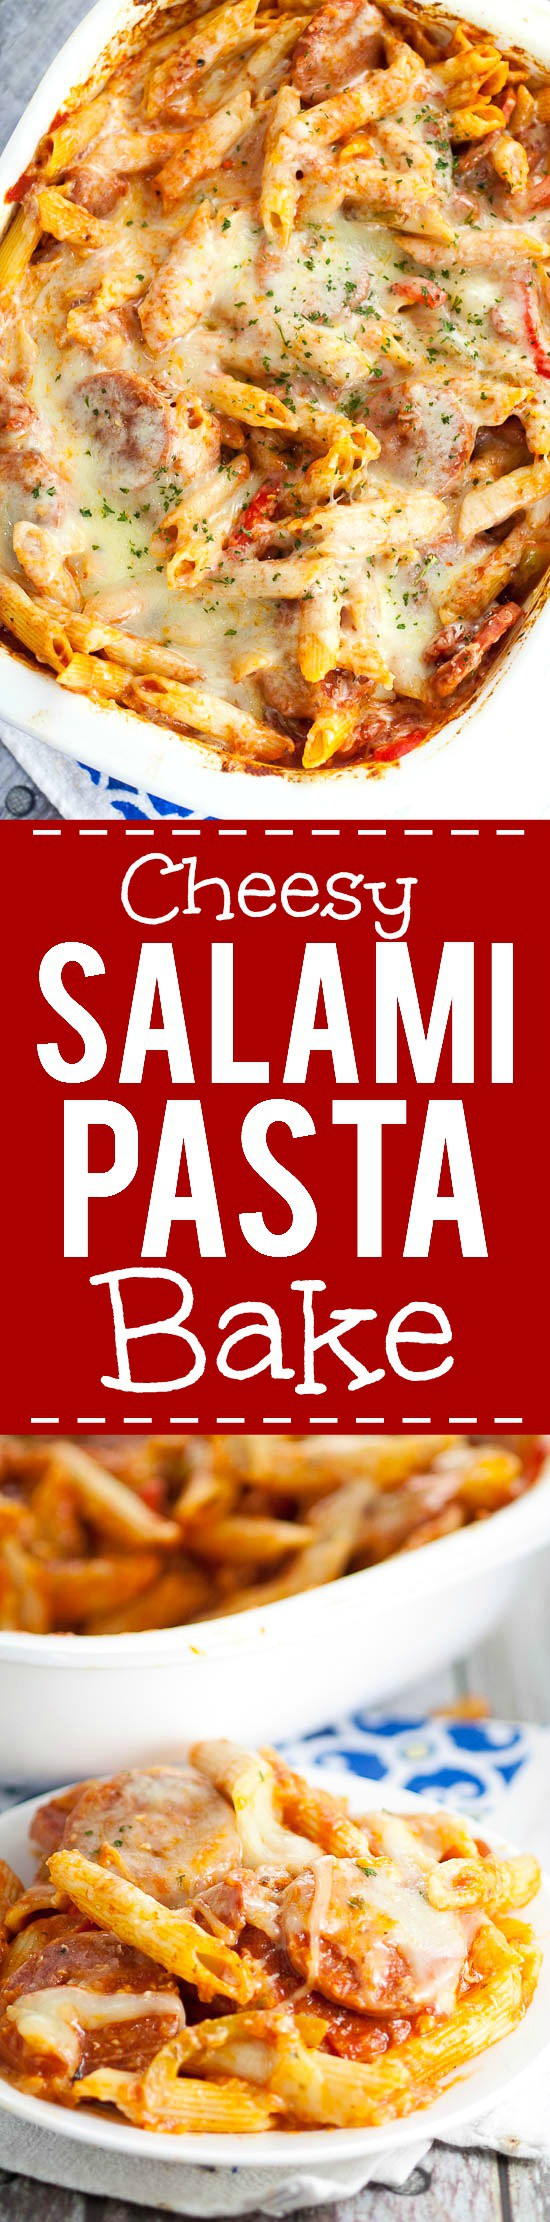 Cheesy Salami Pasta Bake recipe -Quick and easy Salami Pasta Bake recipe is a cheesy pasta and salami recipe that's perfect for a simple dinner that the whole family will love. Love this for a simple, quick and easy family dinner recipe!